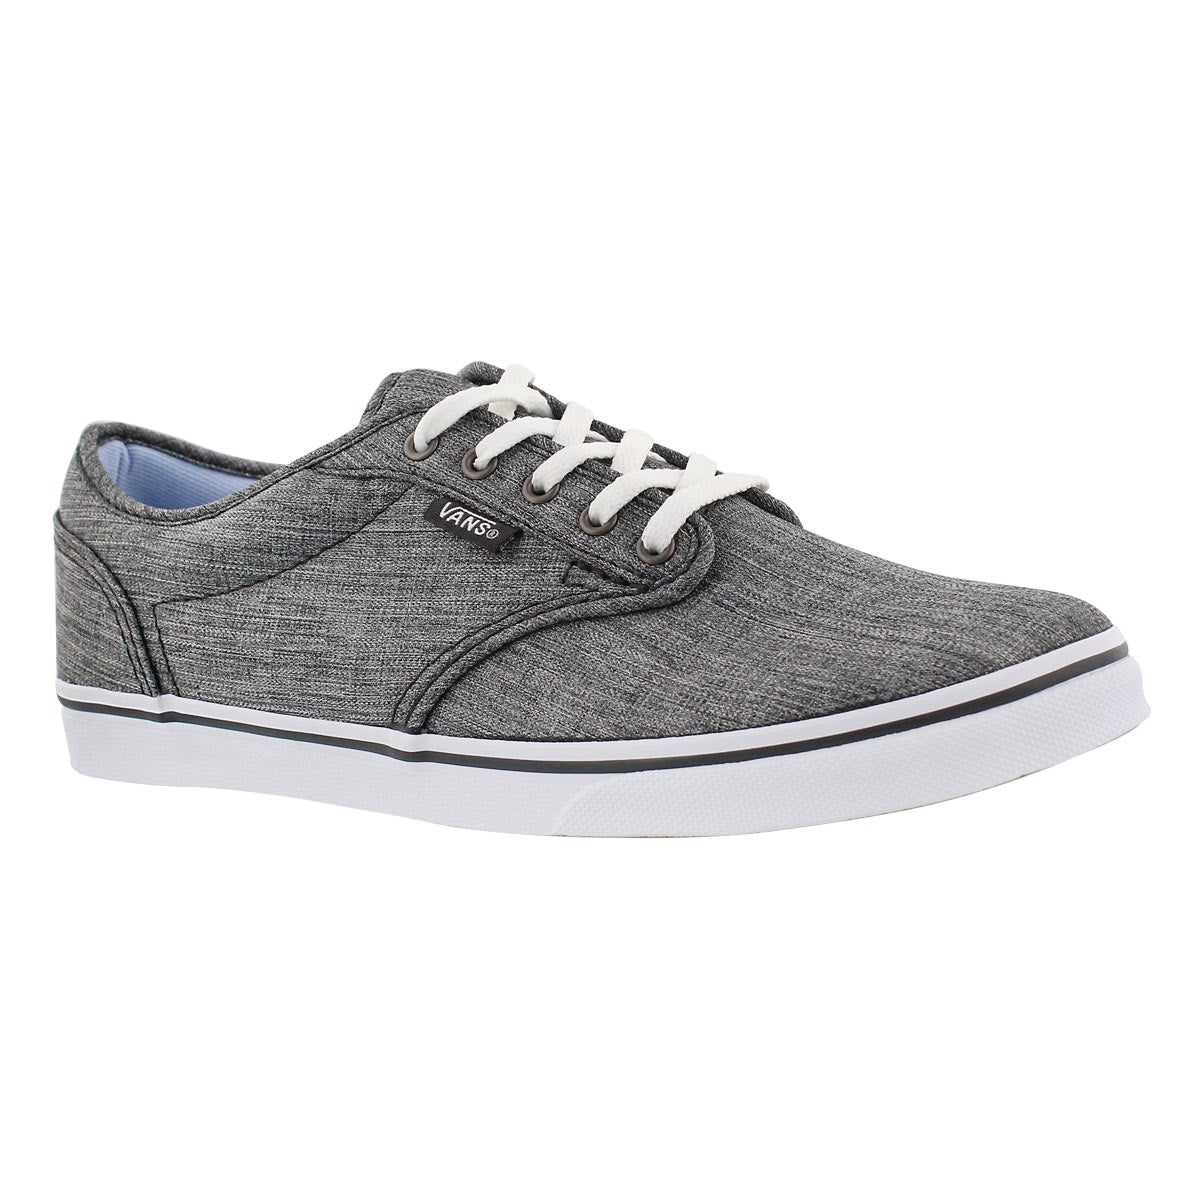 Women's ATWOOD LOW grey lace up sneakers